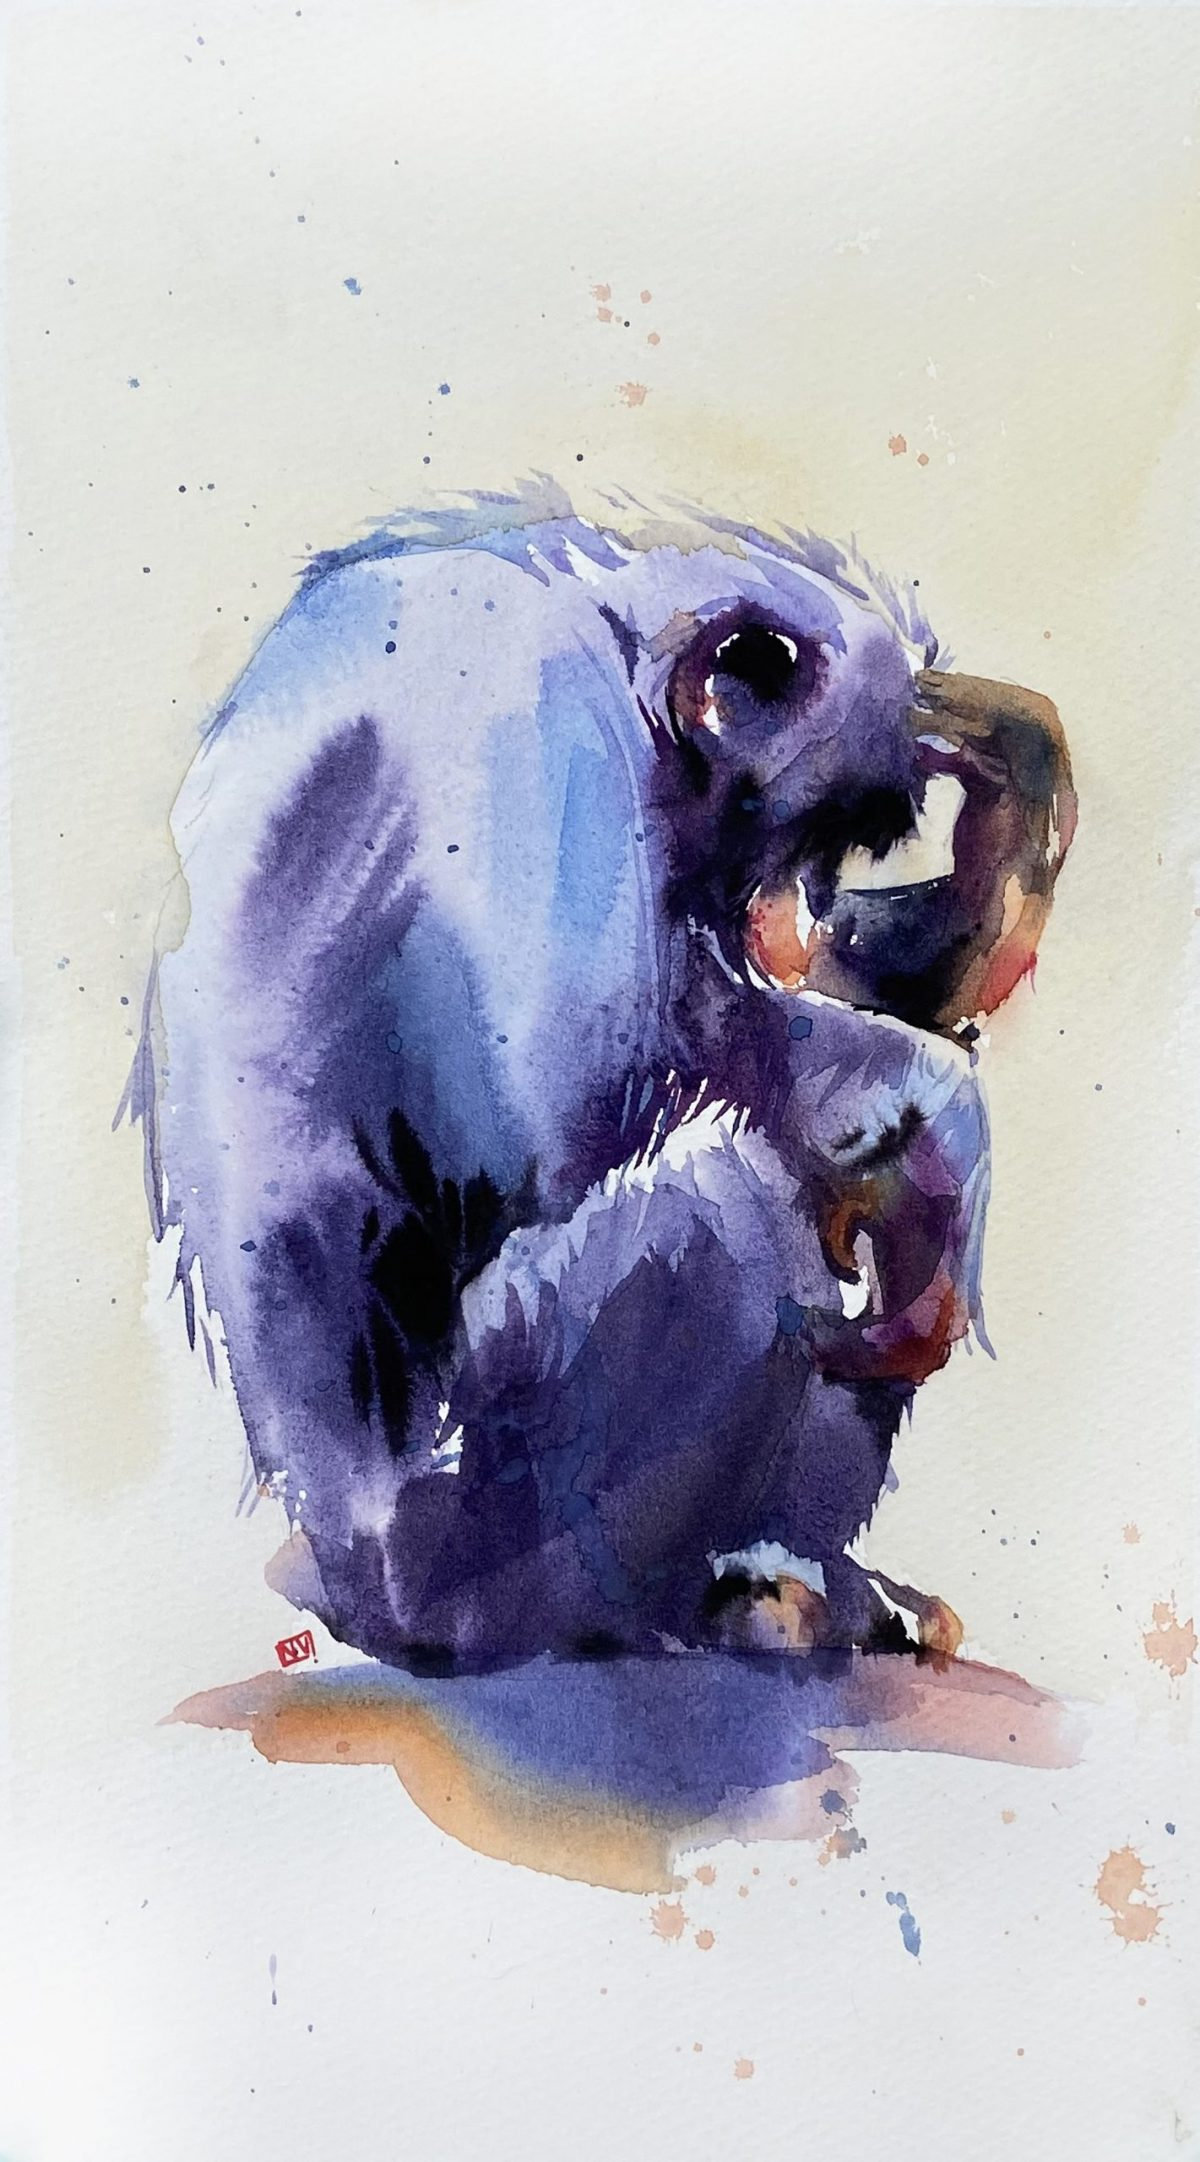 A watercolour painting of a chimpanzee